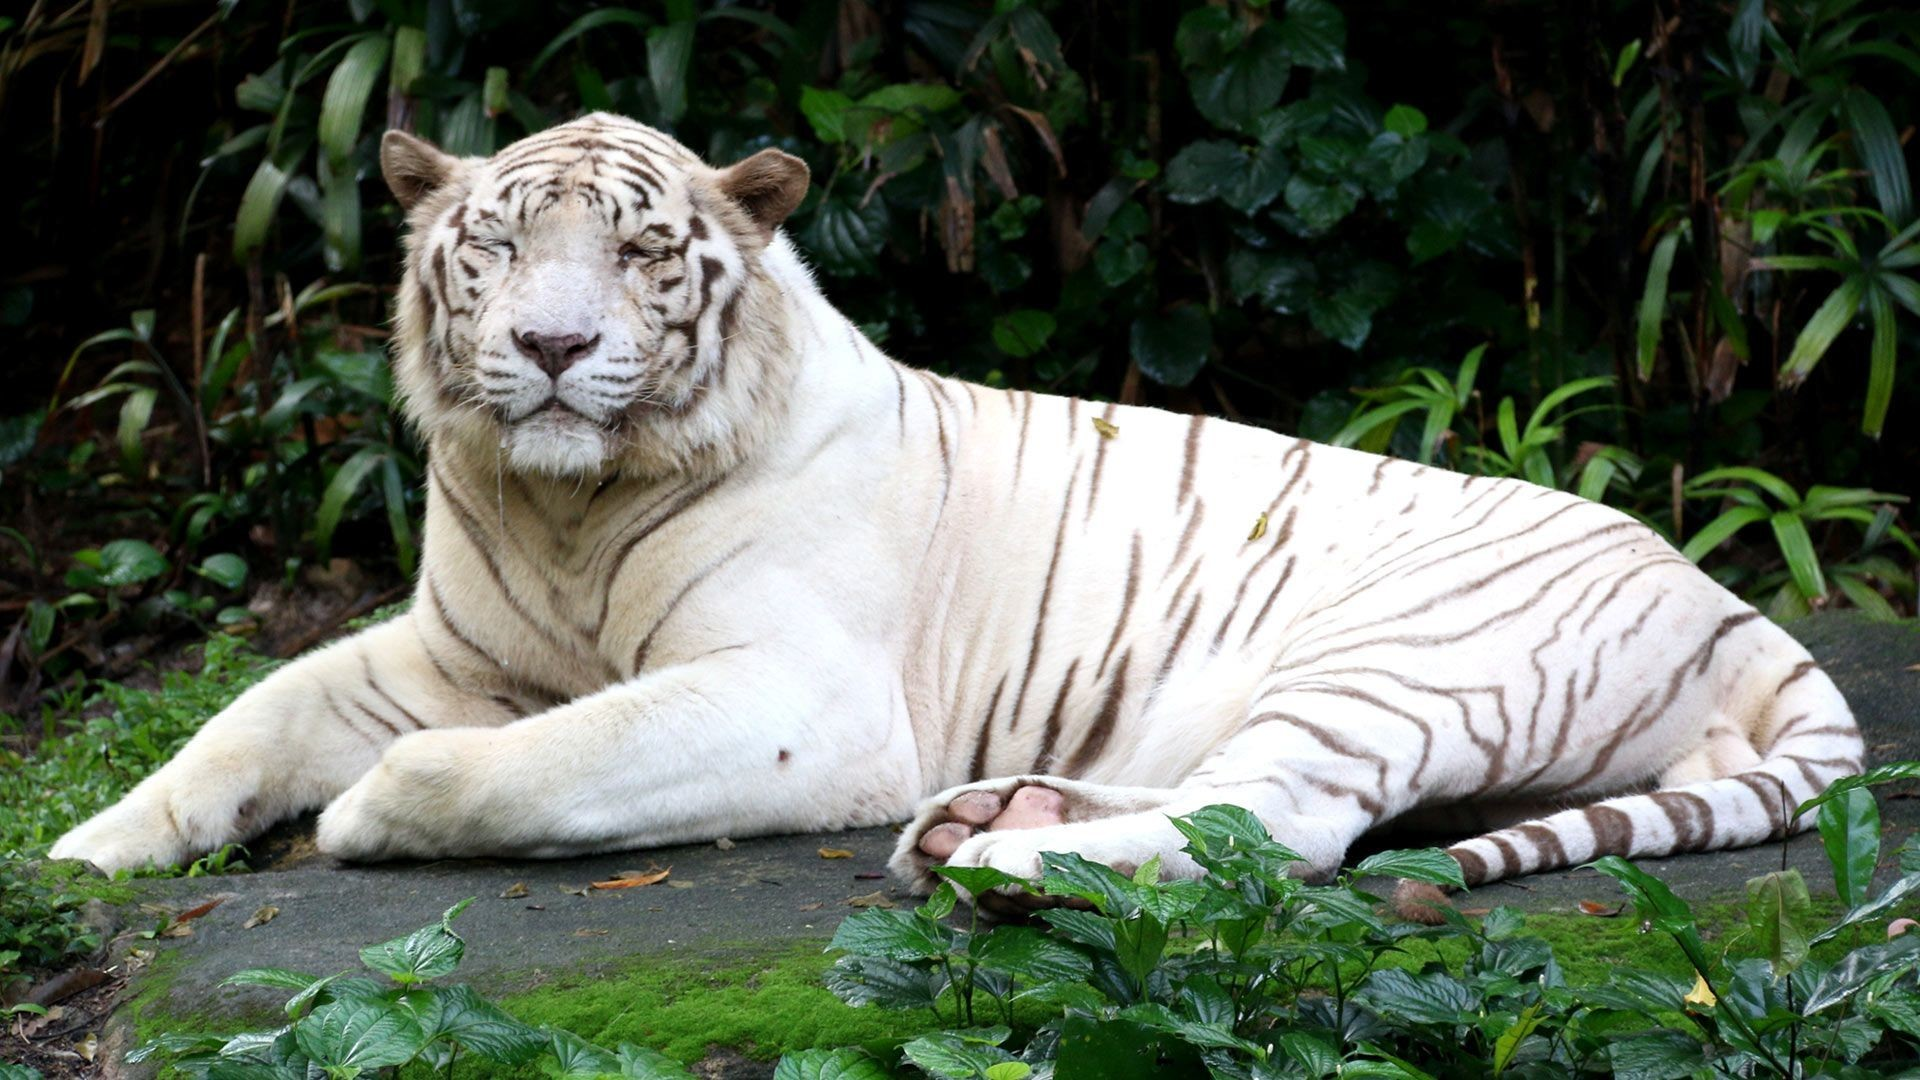 Beautiful white tiger wallpapers – Free full hd wallpapers for .